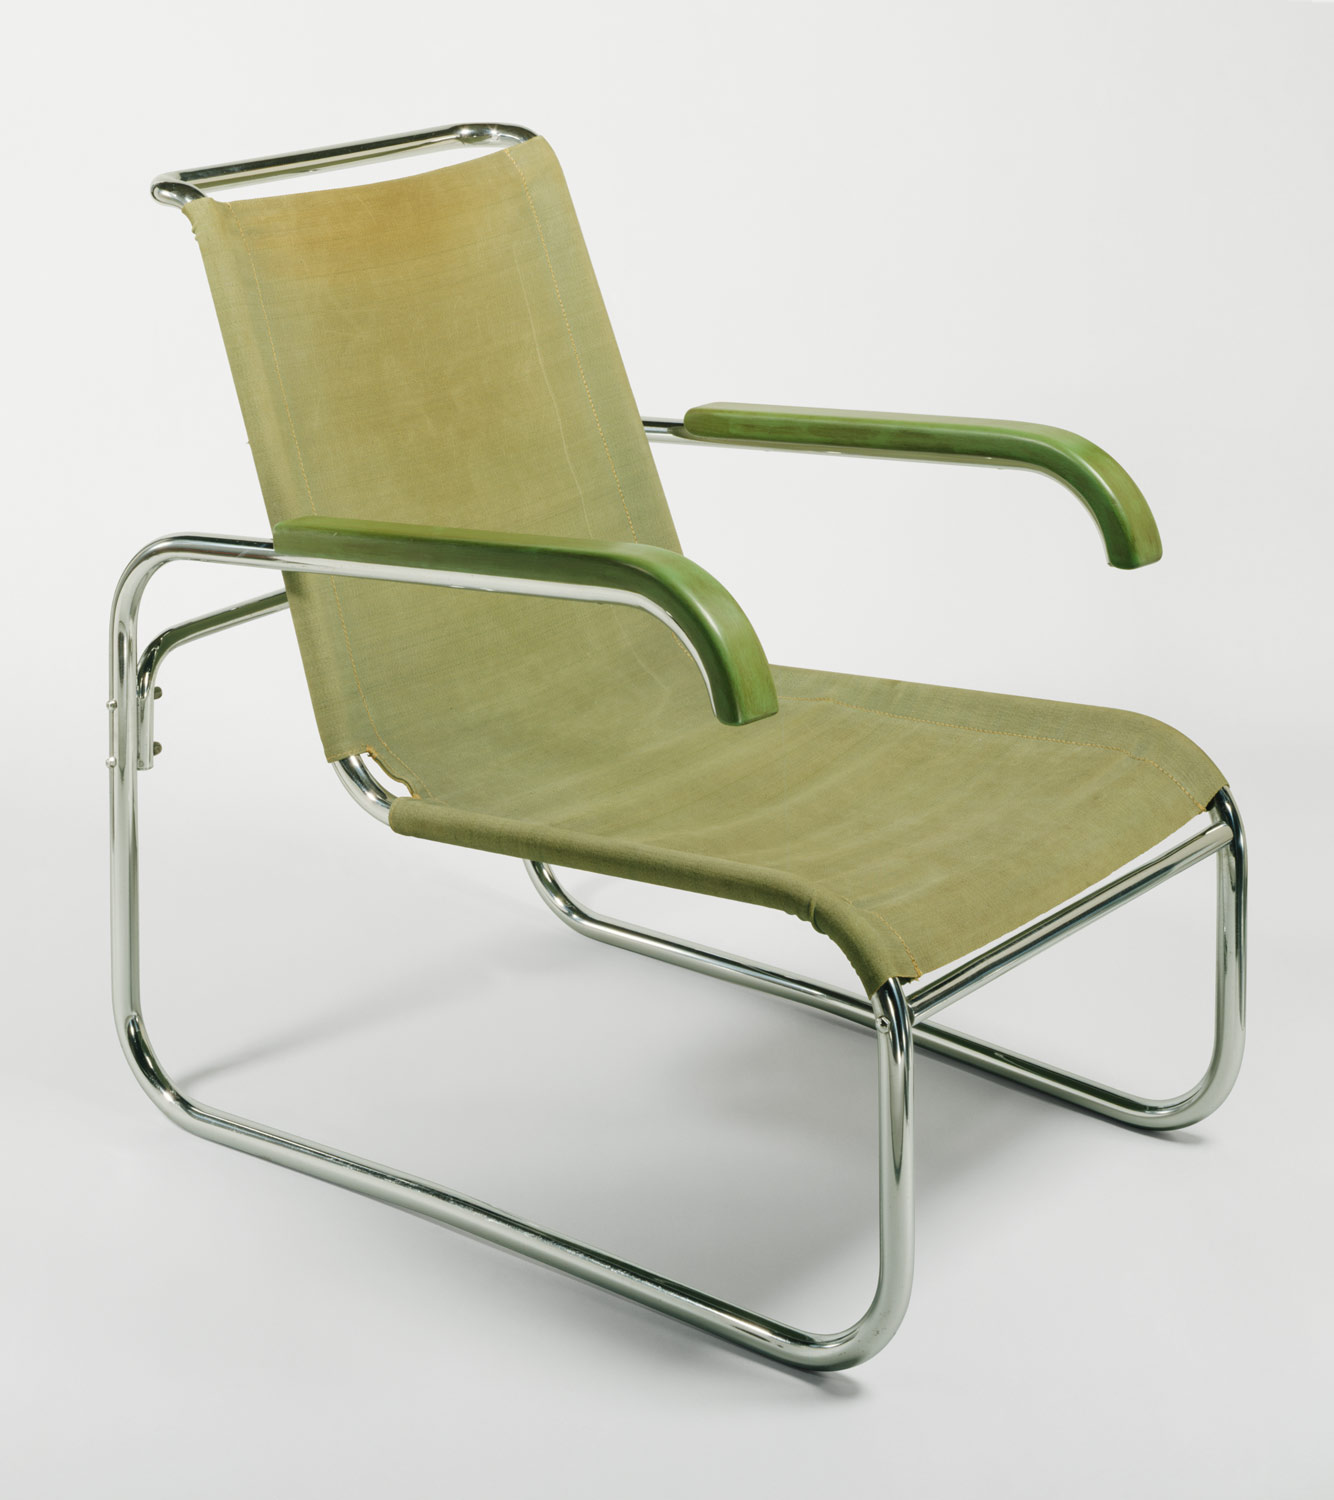 "B35"" Armchair Marcel Breuer 1985 127 Work of Art"